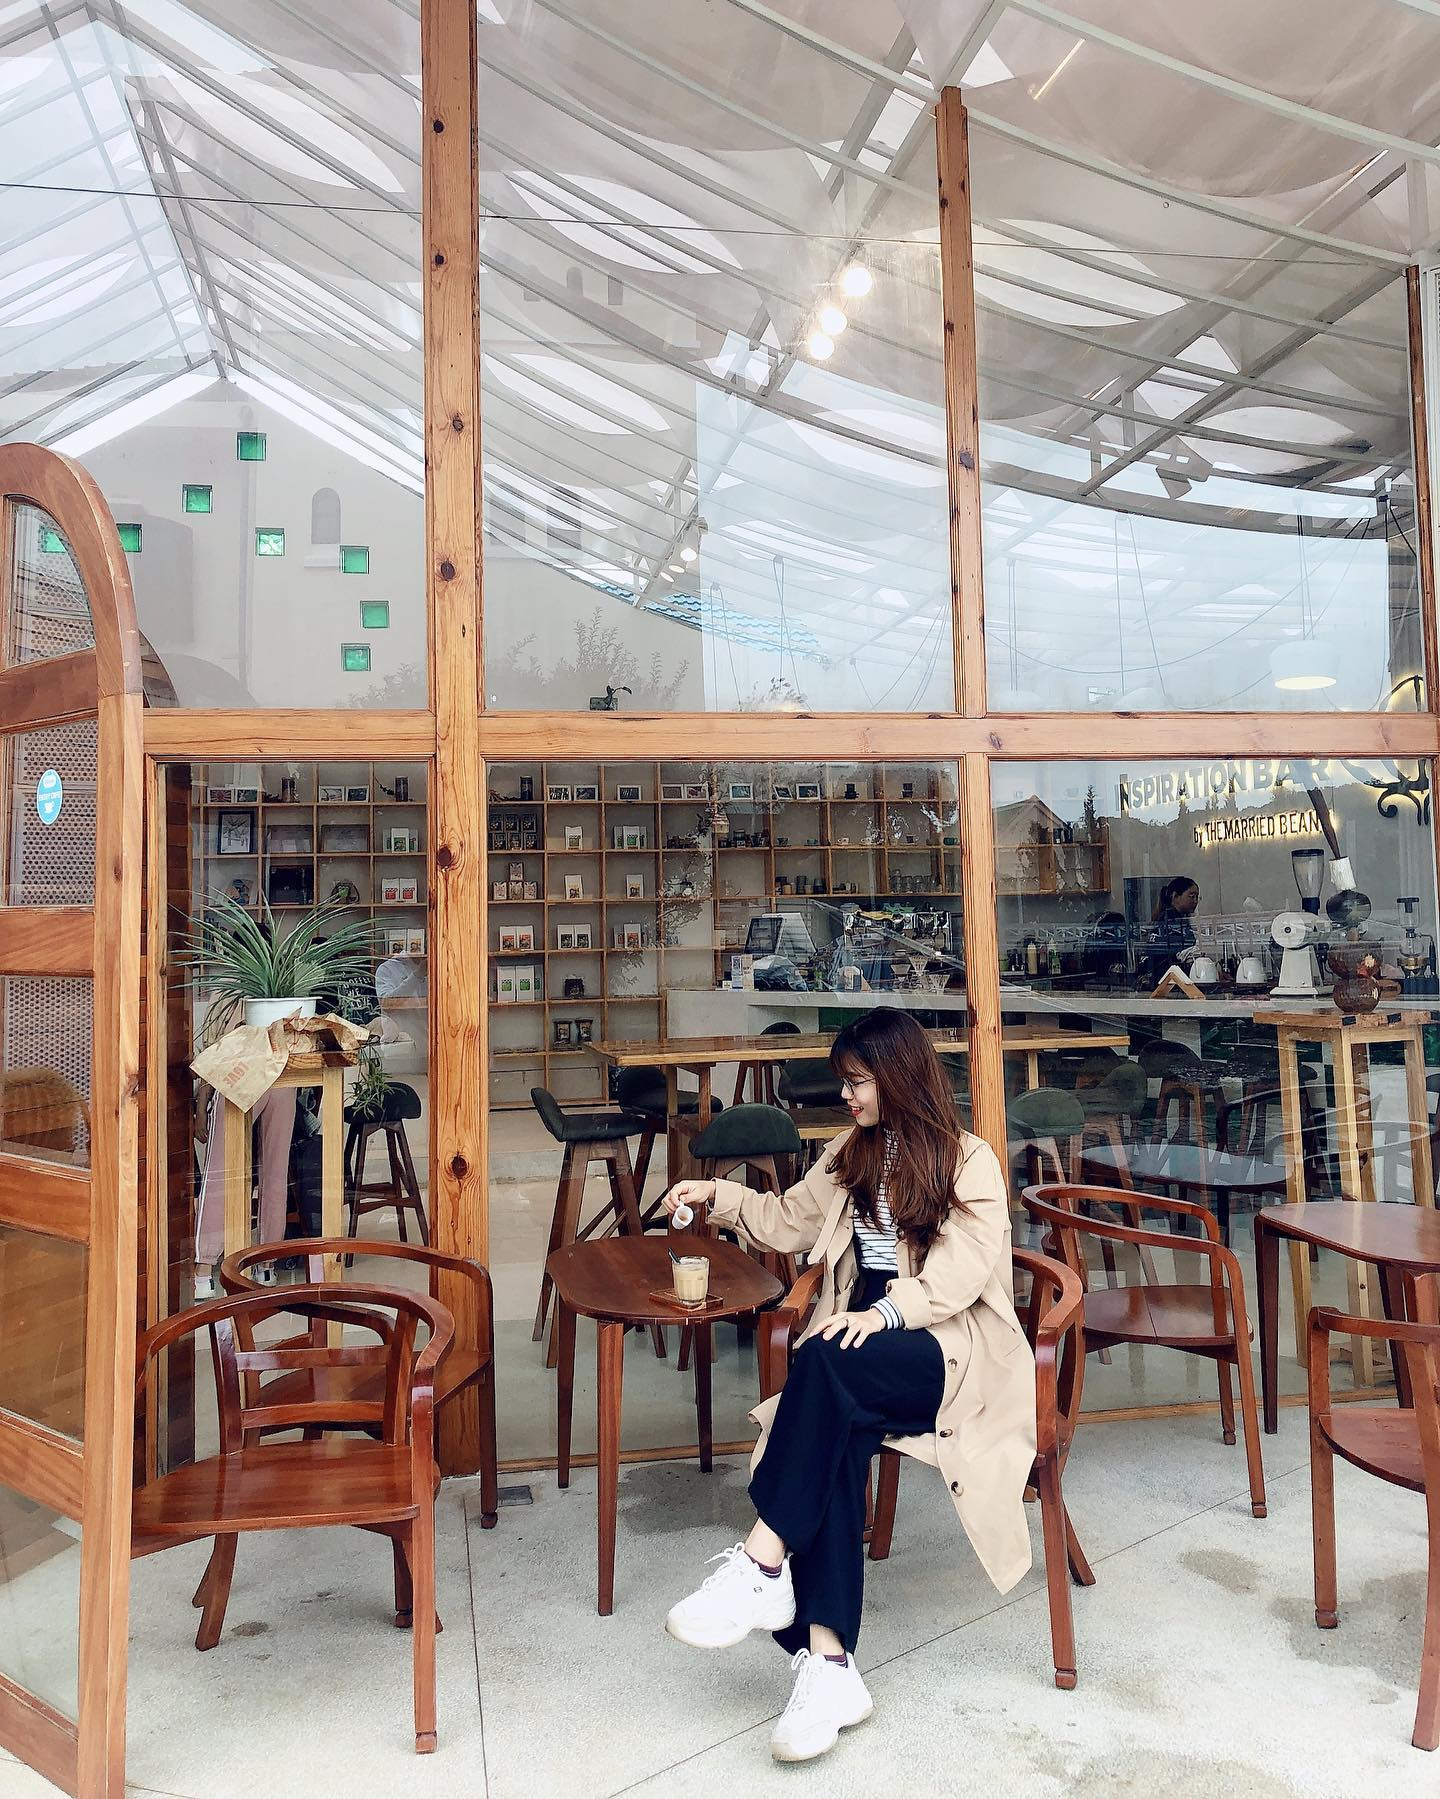 da-lat-the-married-beans-workspace-7